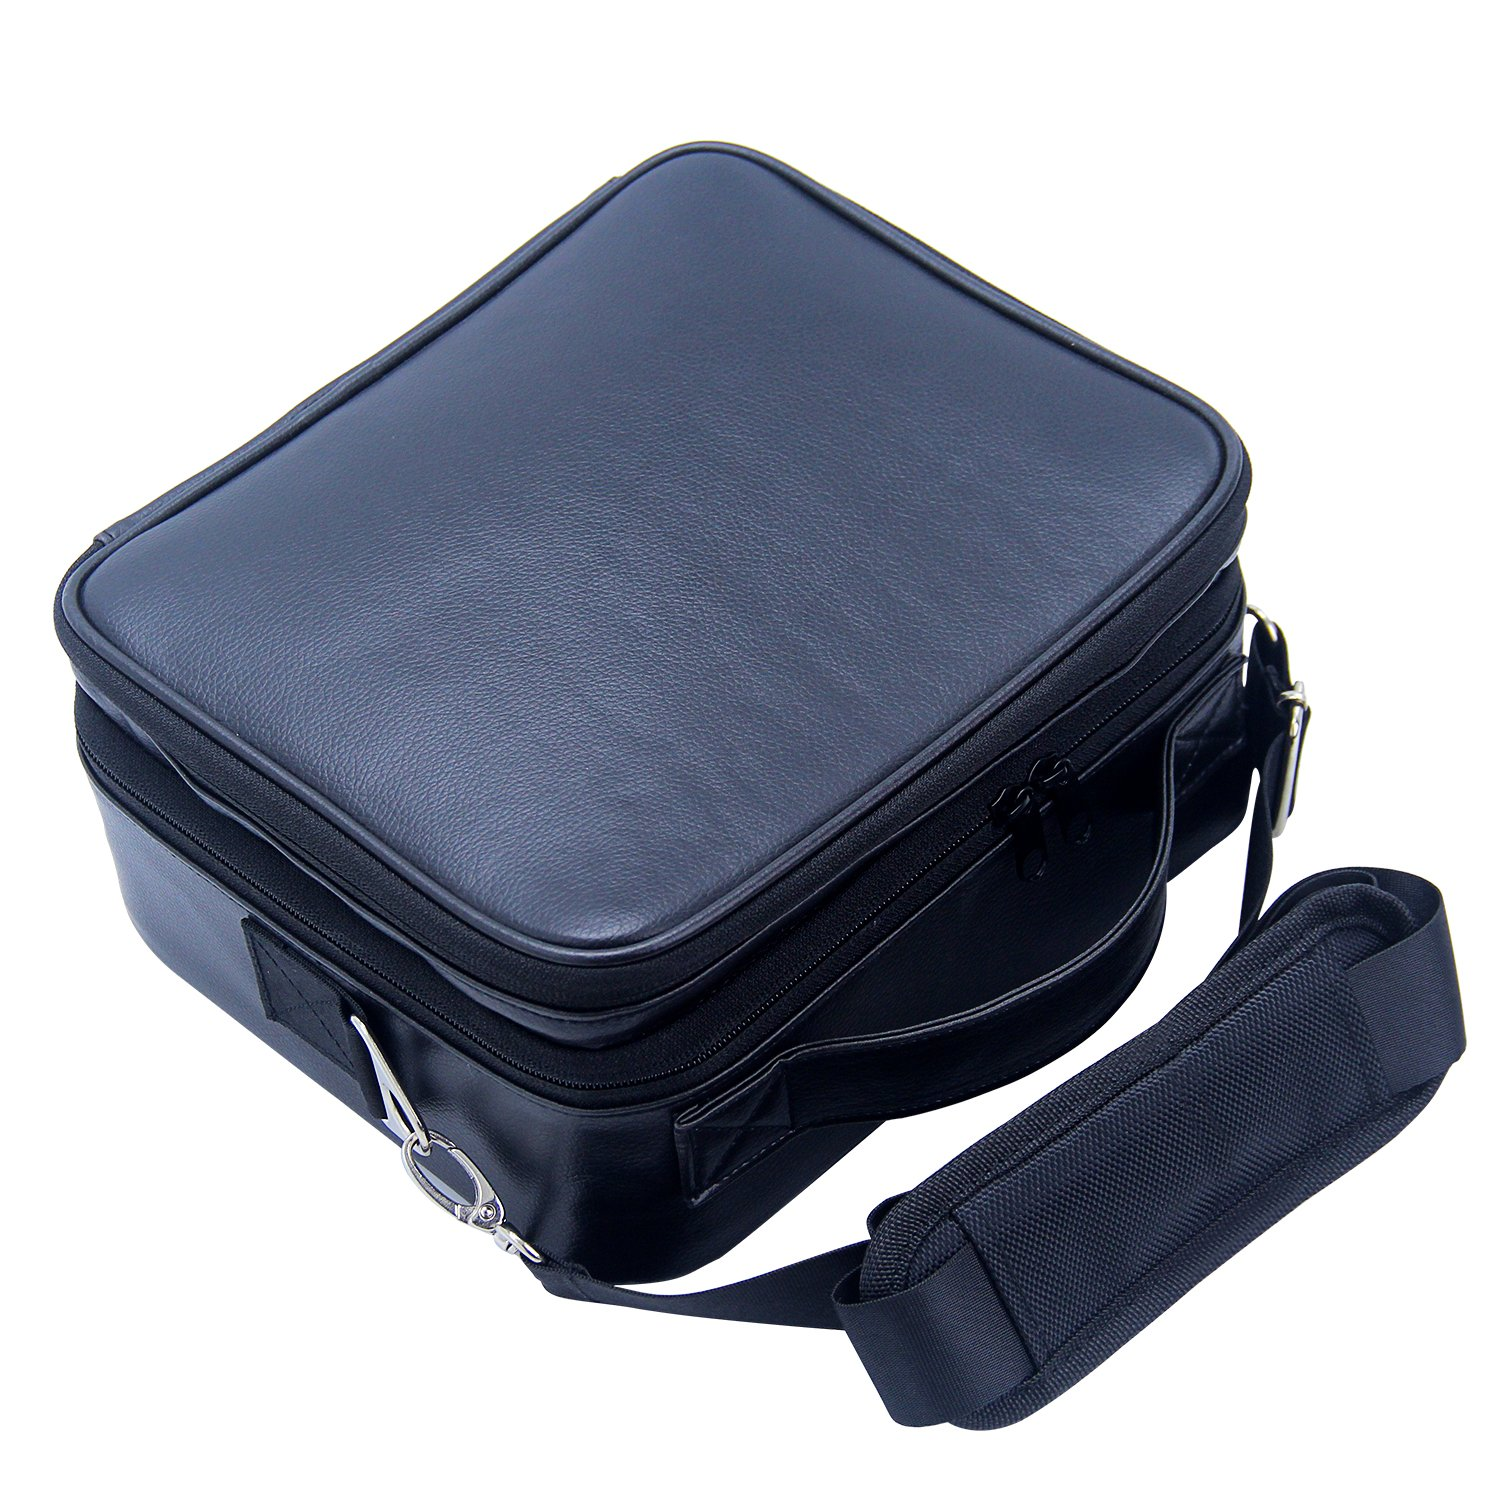 Travel Makeup Bag Makeup Train Case 2 Layer Premium PU Leather Cosmetic Makeup Brush Organizer with Mirror Portable Artist Storage Bag Toiletry Bag Perfect Gift (Black) by Relavel (Image #6)